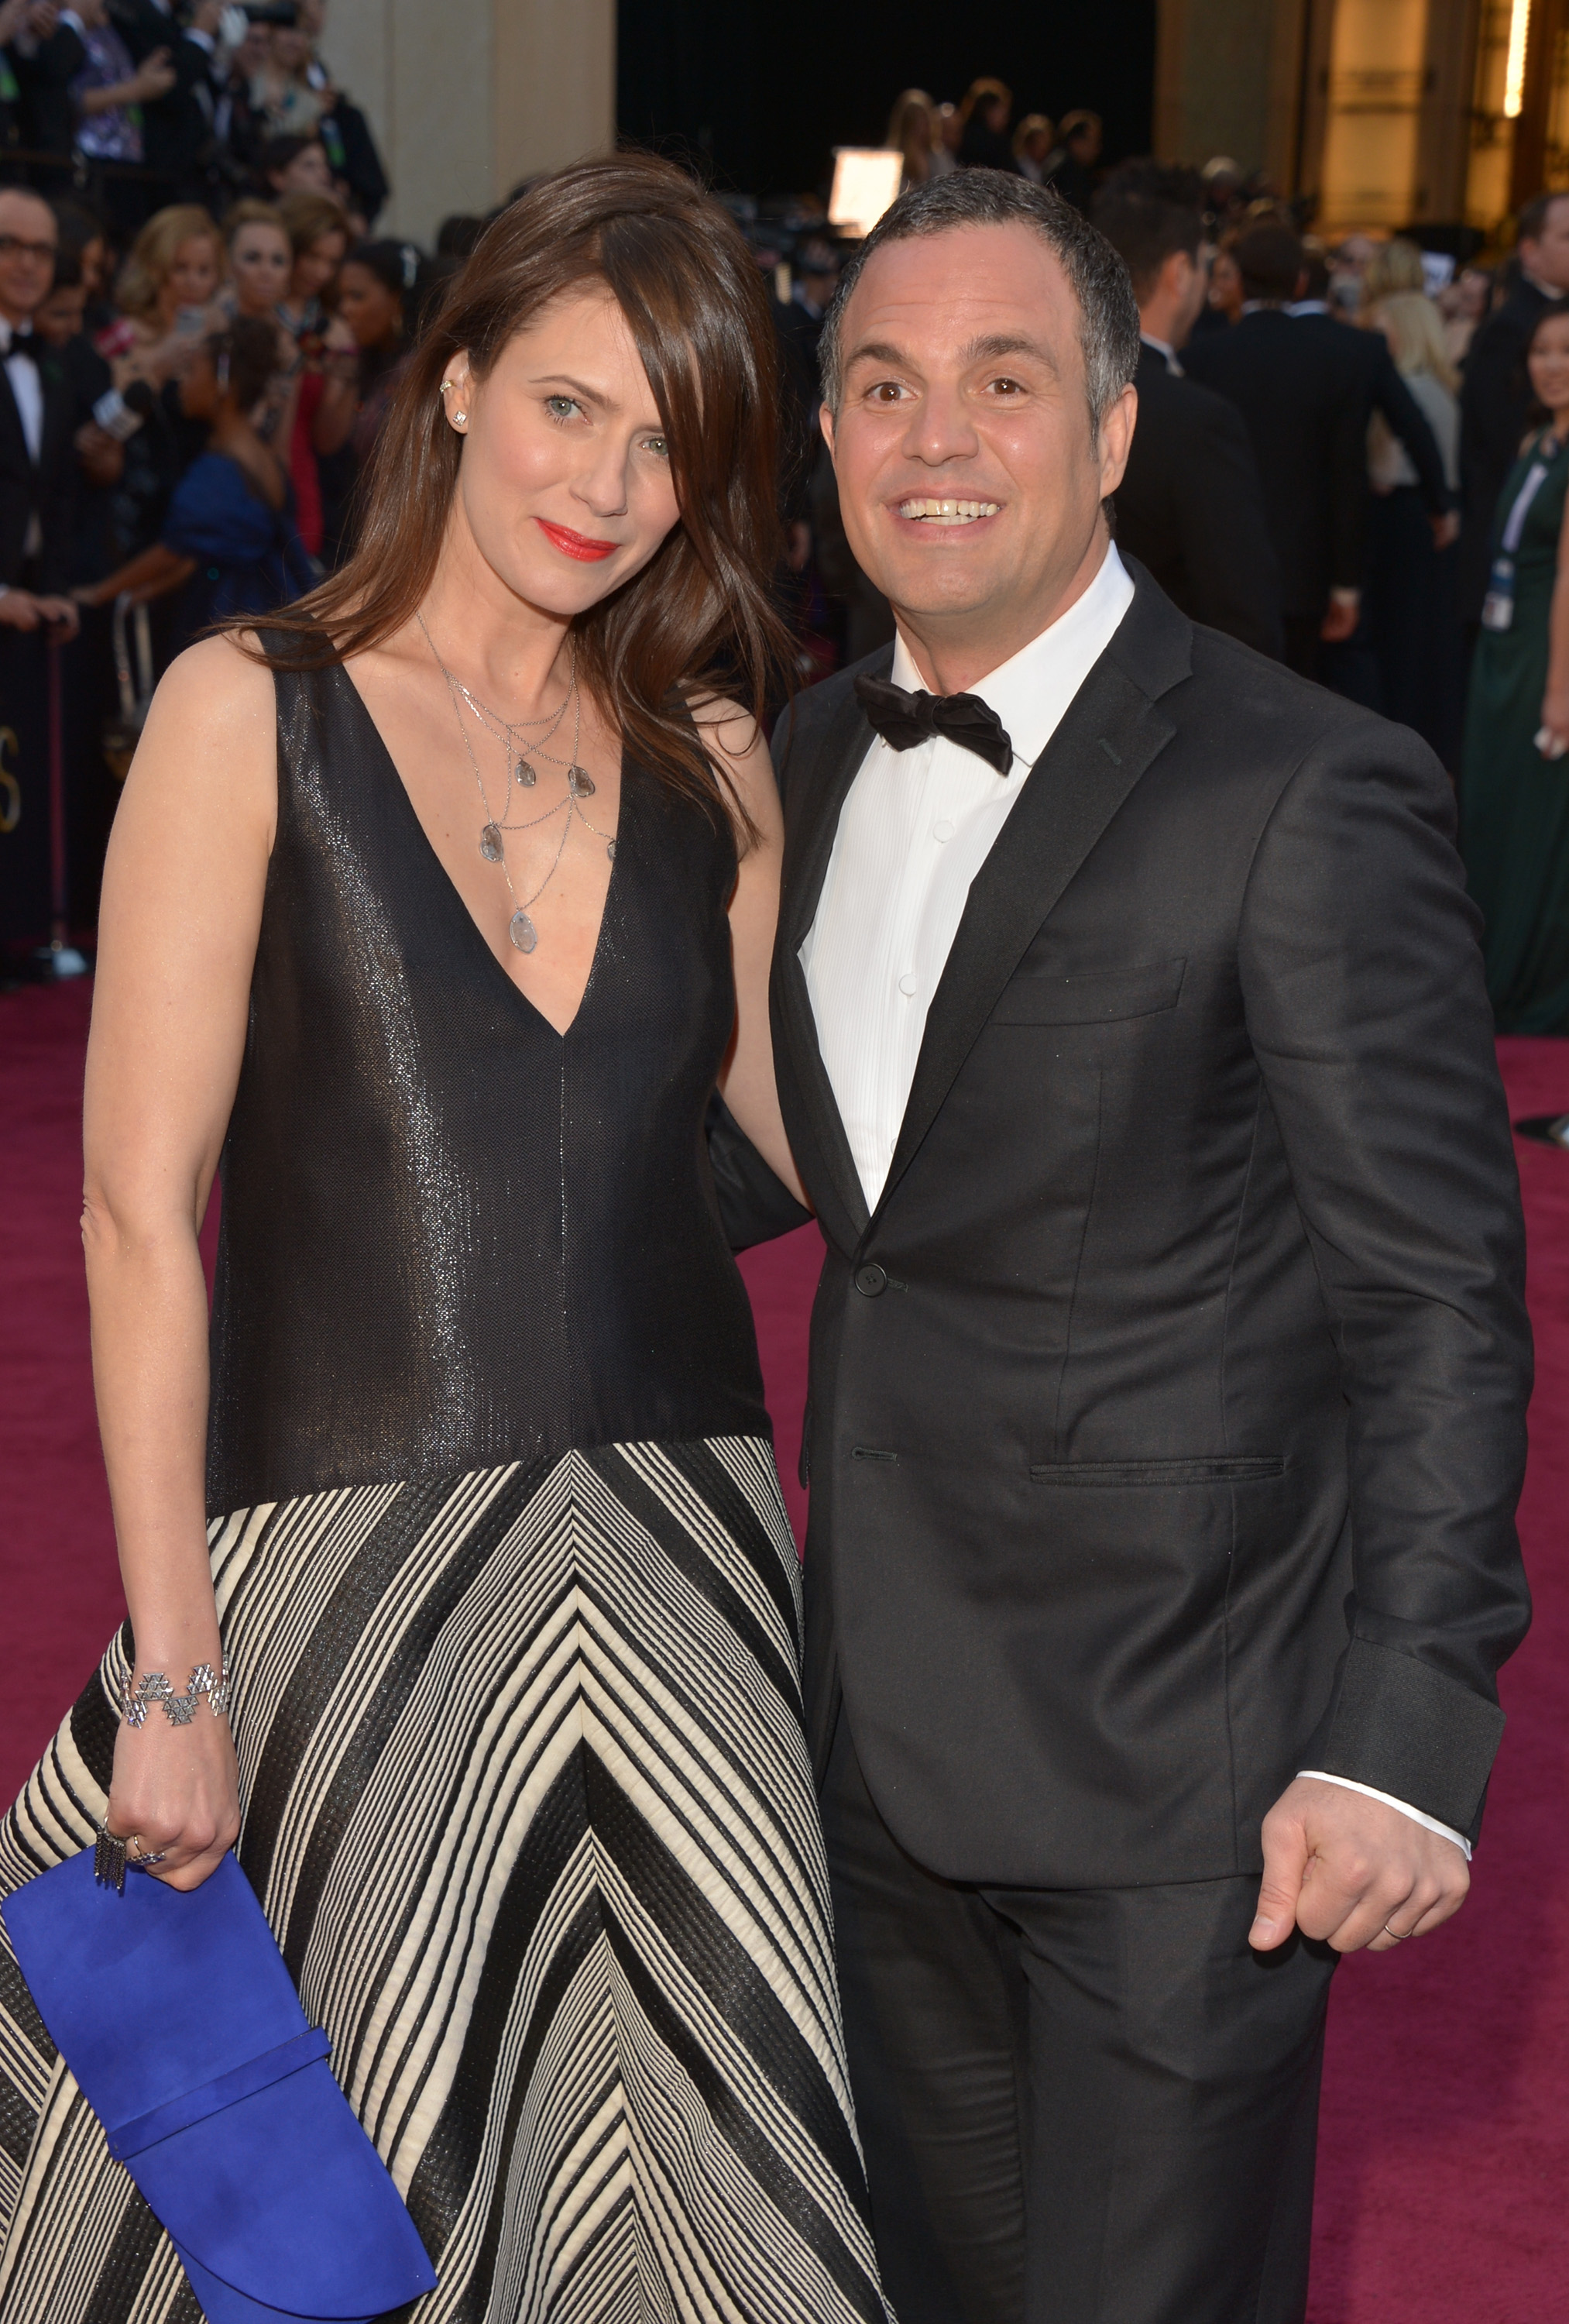 mark ruffalo sunrise coigney dating Who is mark ruffalo dating mark ruffalo blames ben affleck for ending his friendship with costar jennifer garner 23082016 23082016 cdate dating but.